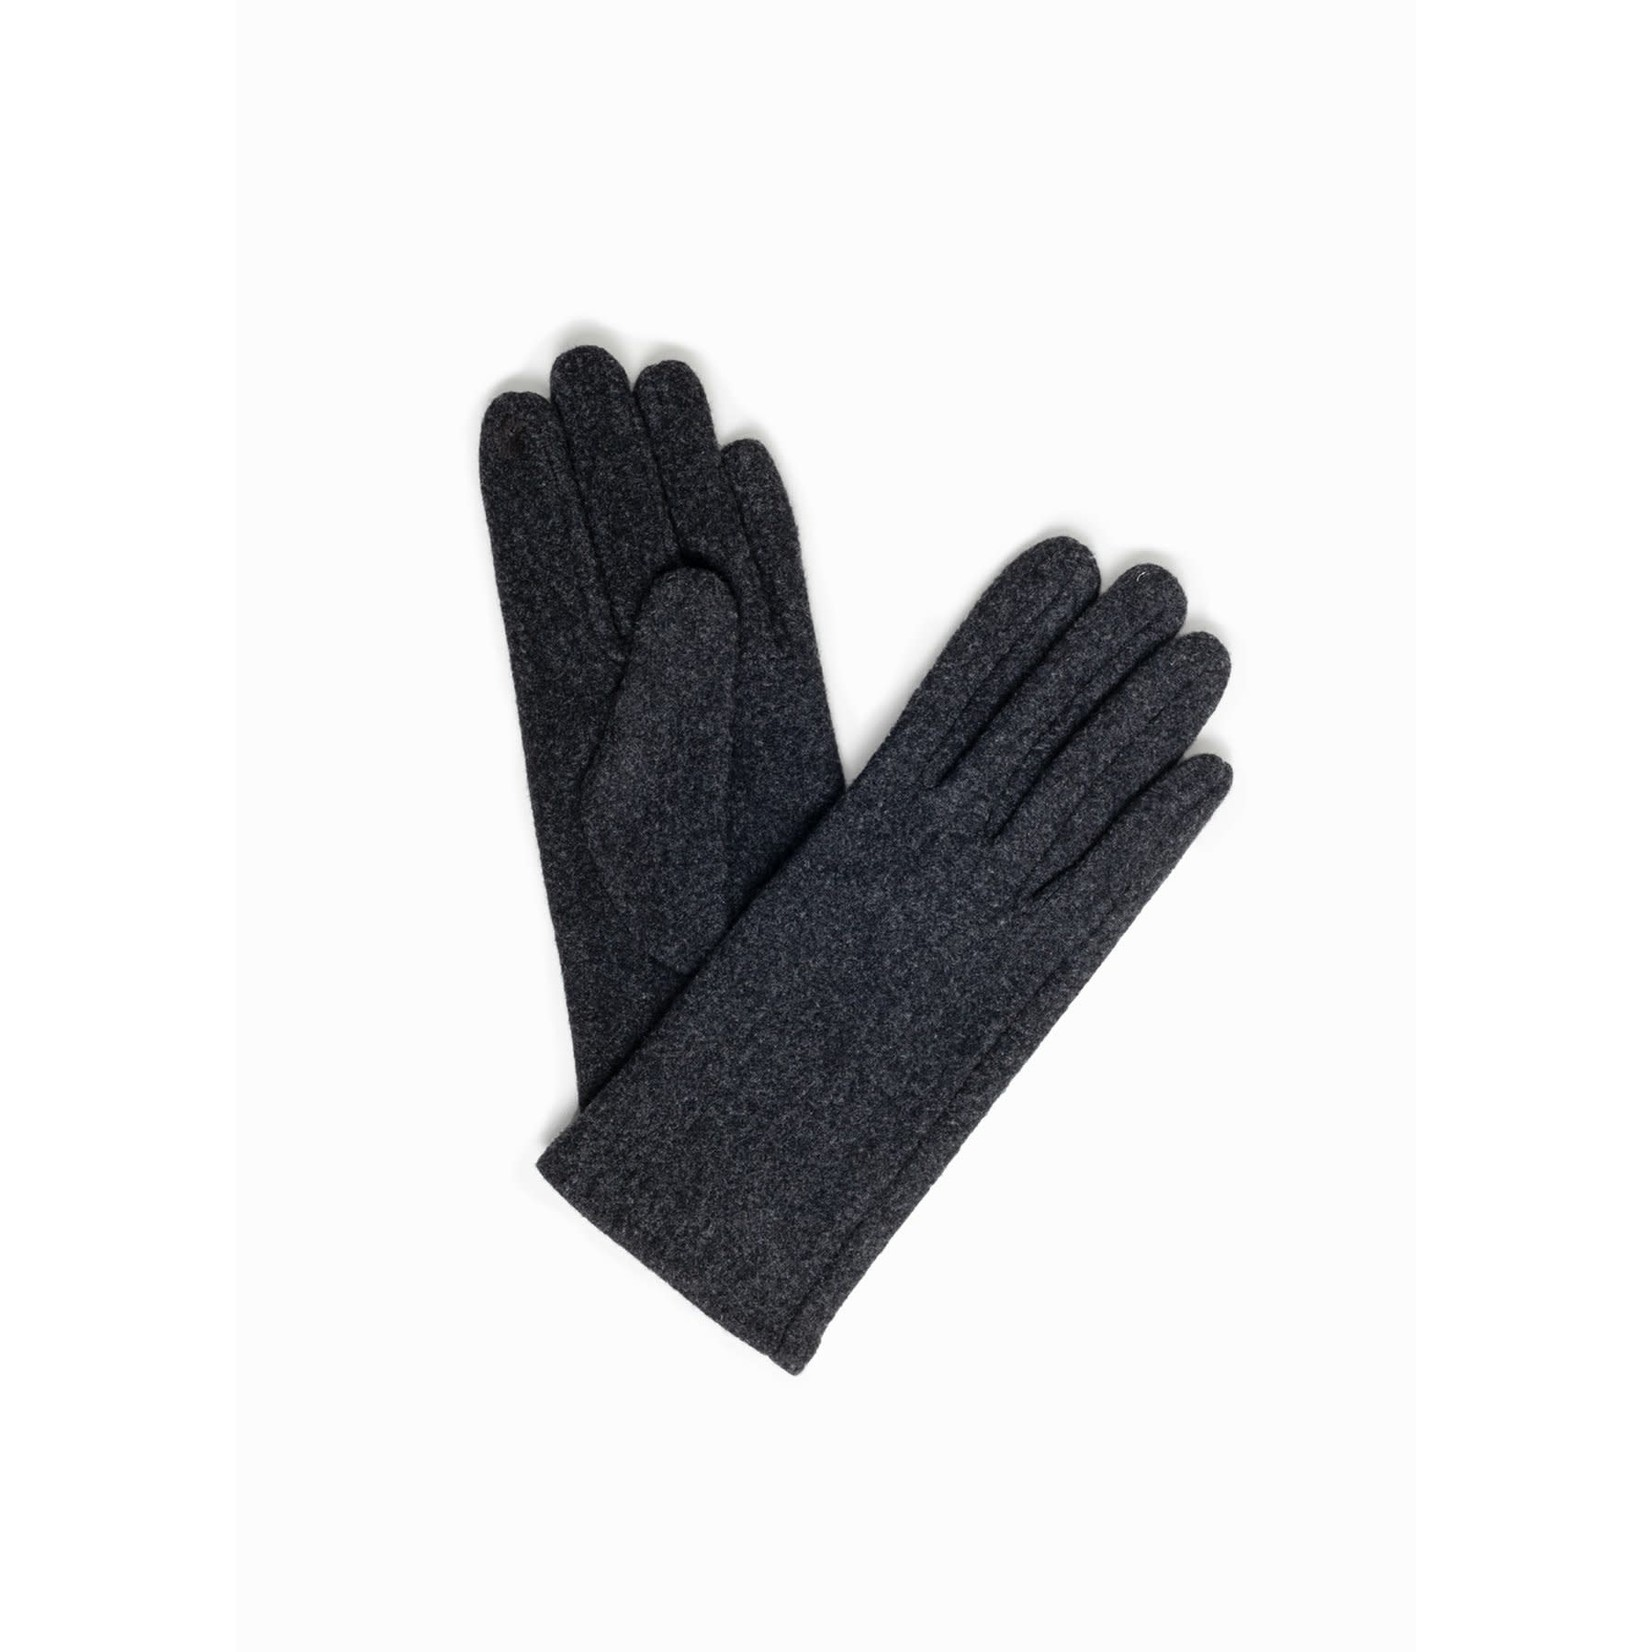 Look By M Chic Plain Gloves in Charcoal